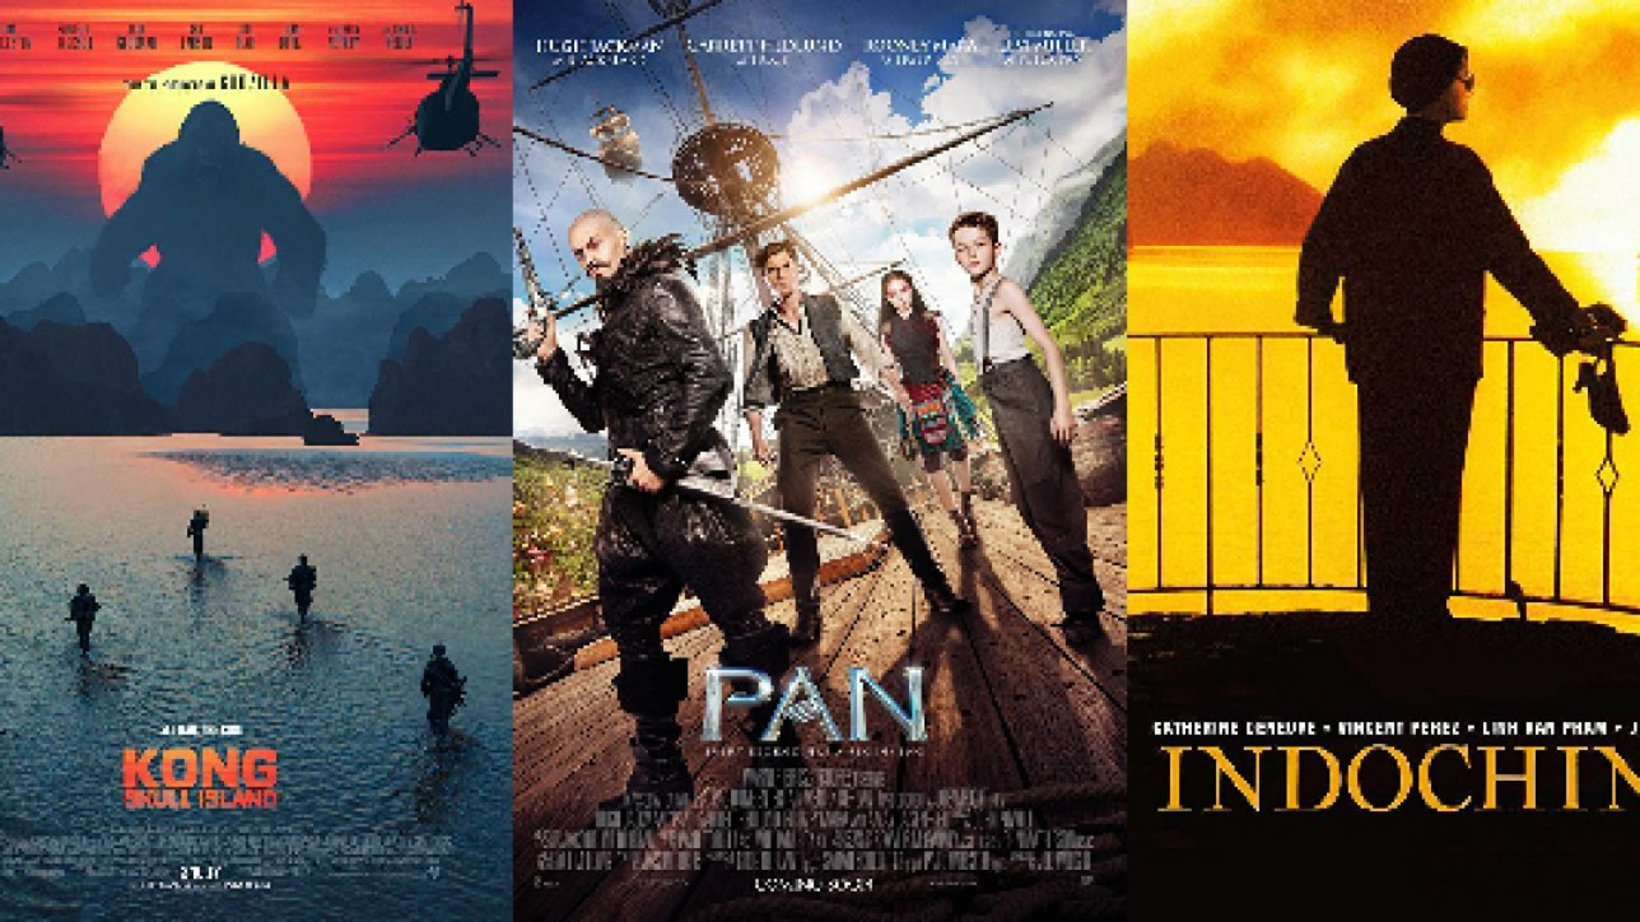 Top 5 films shot in Vietnam